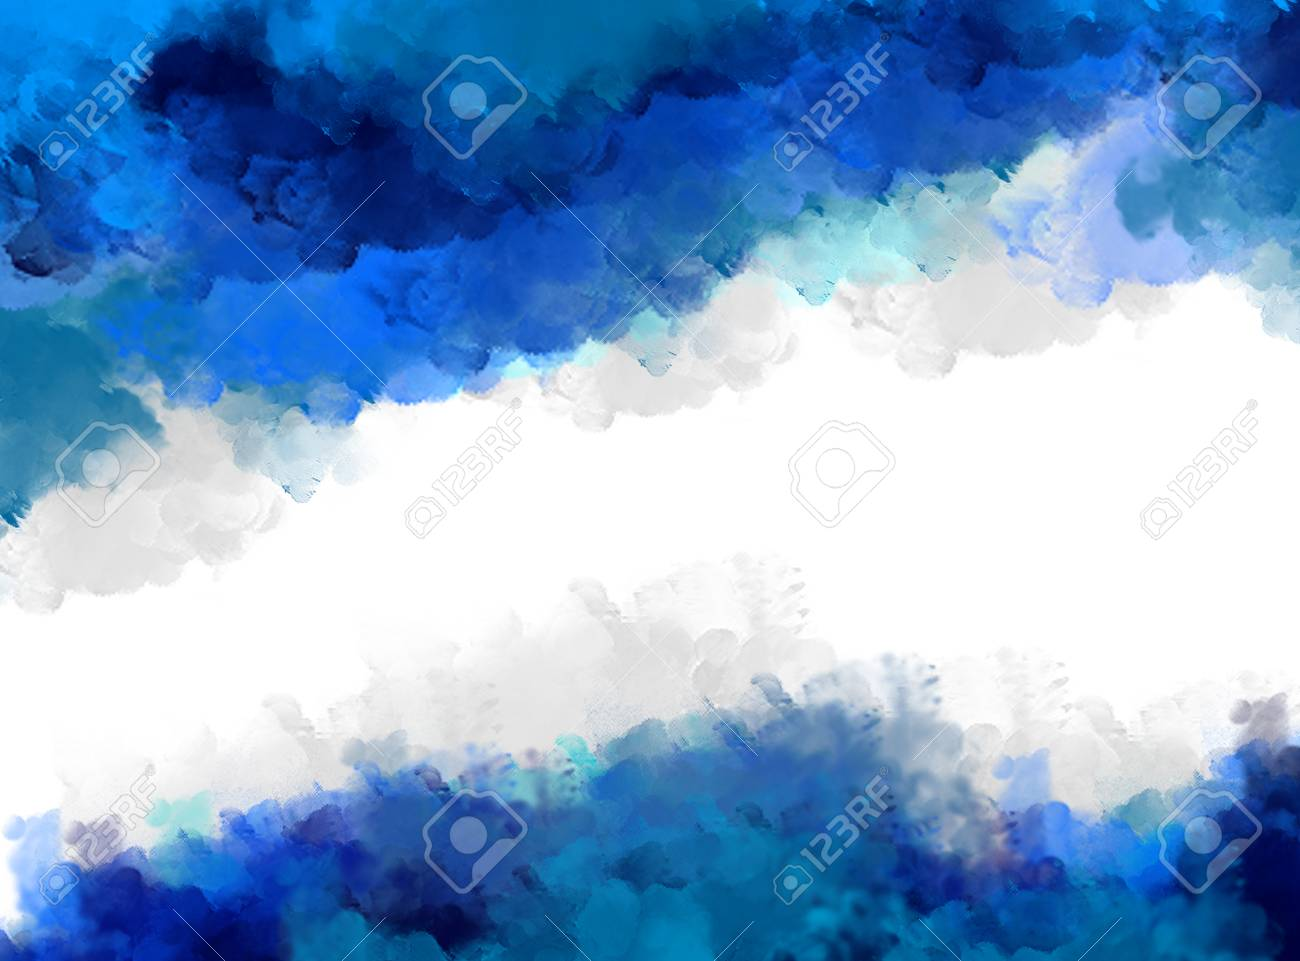 Watercolor Ink Splash Blue Background Template Design Graphic Wallpaper Blank